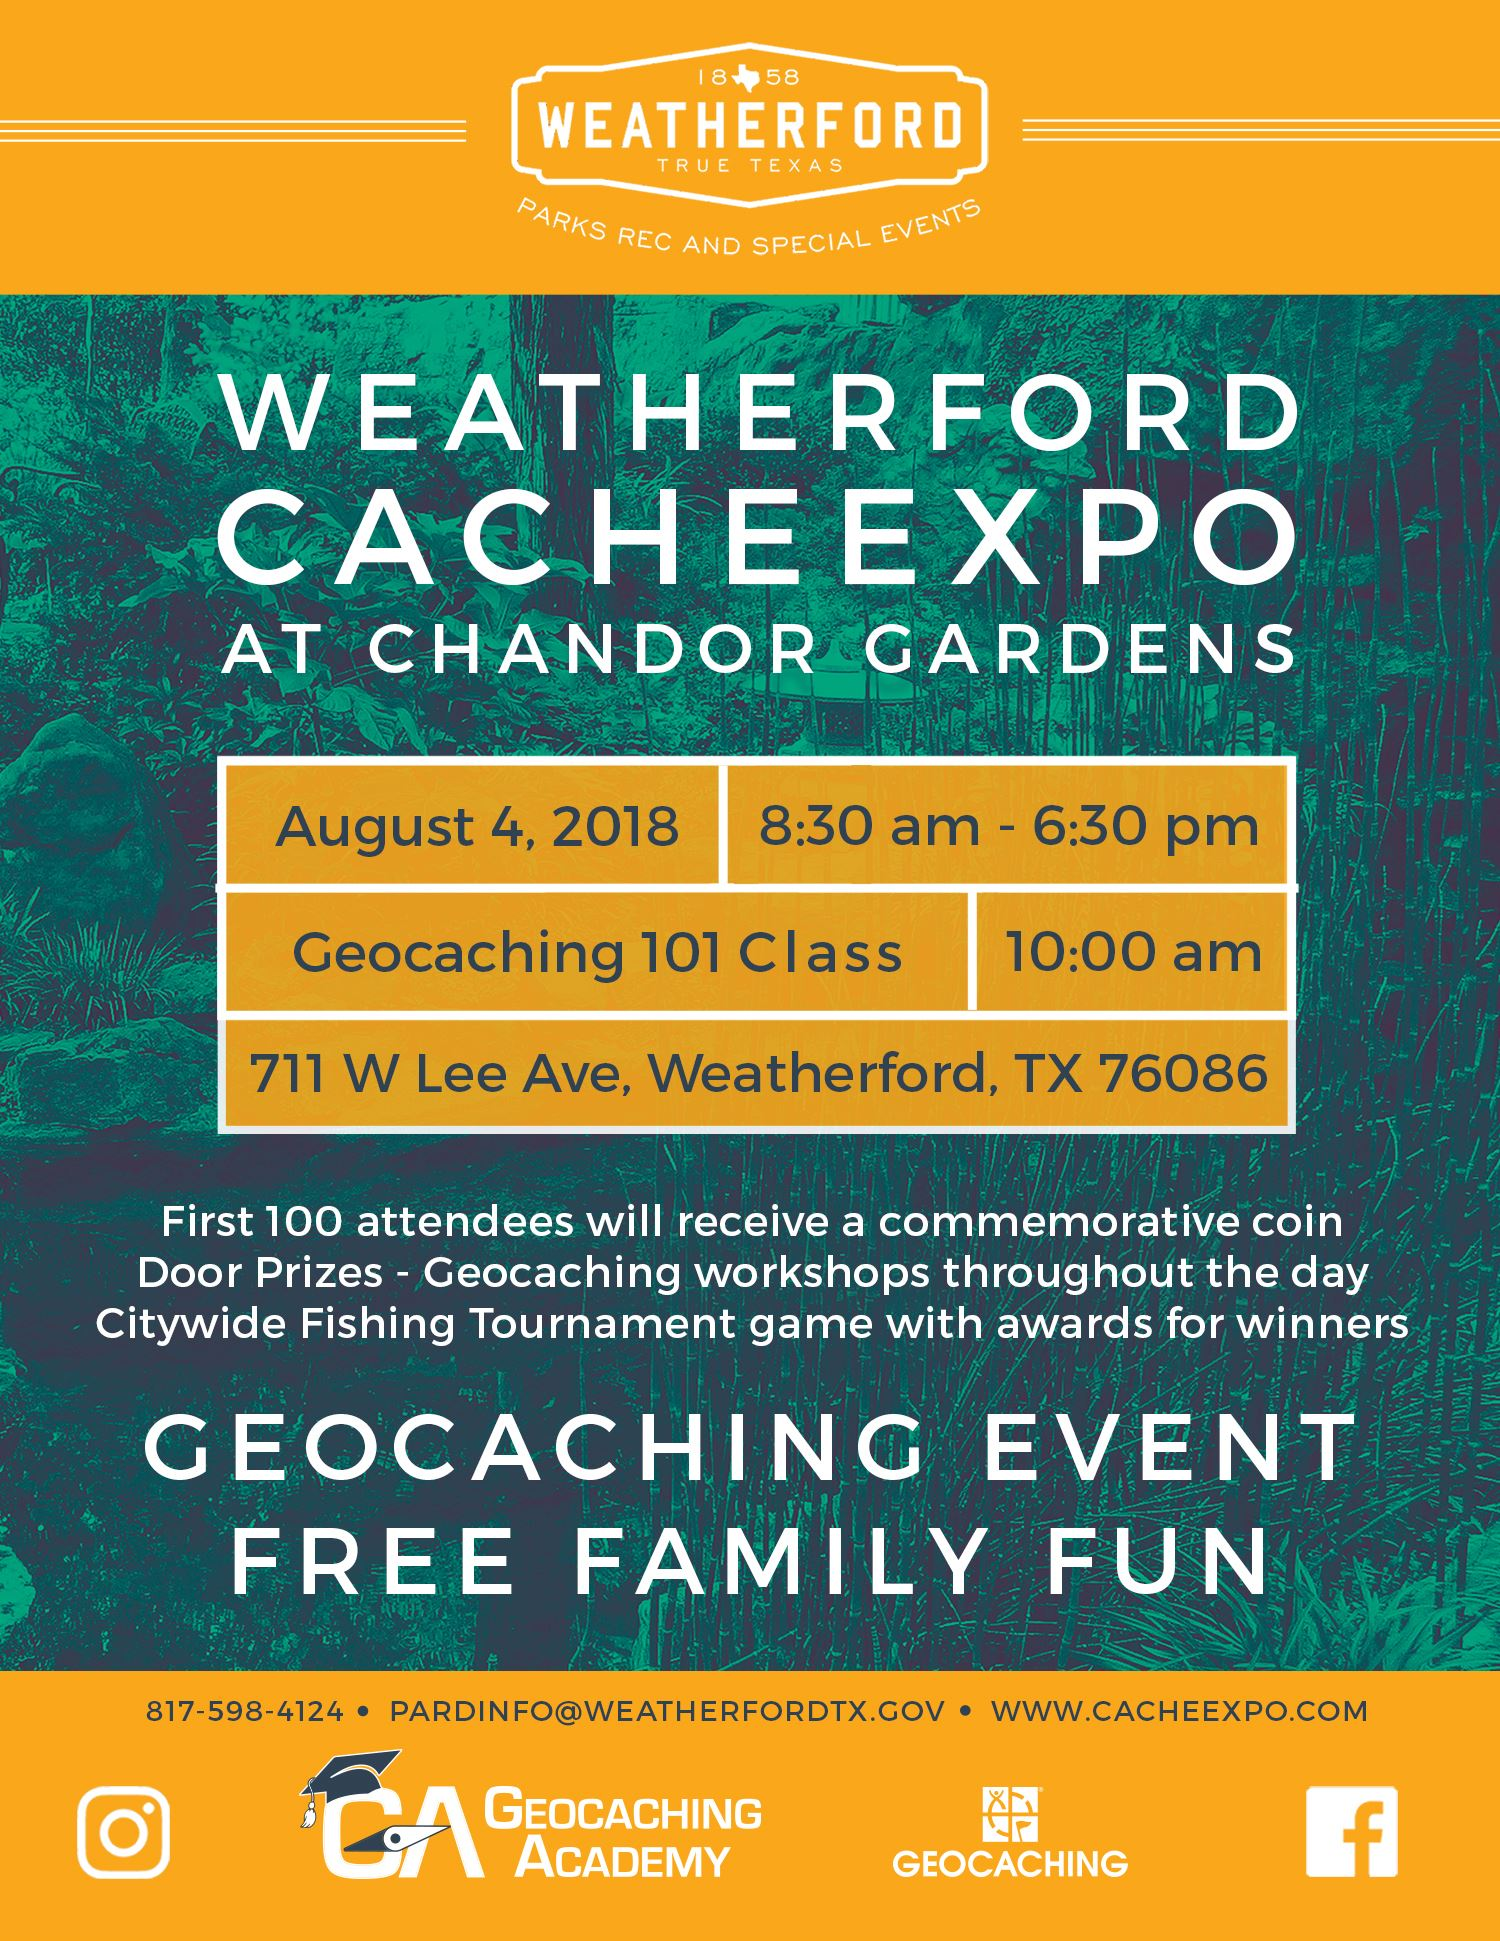 CacheExpo at Chandor